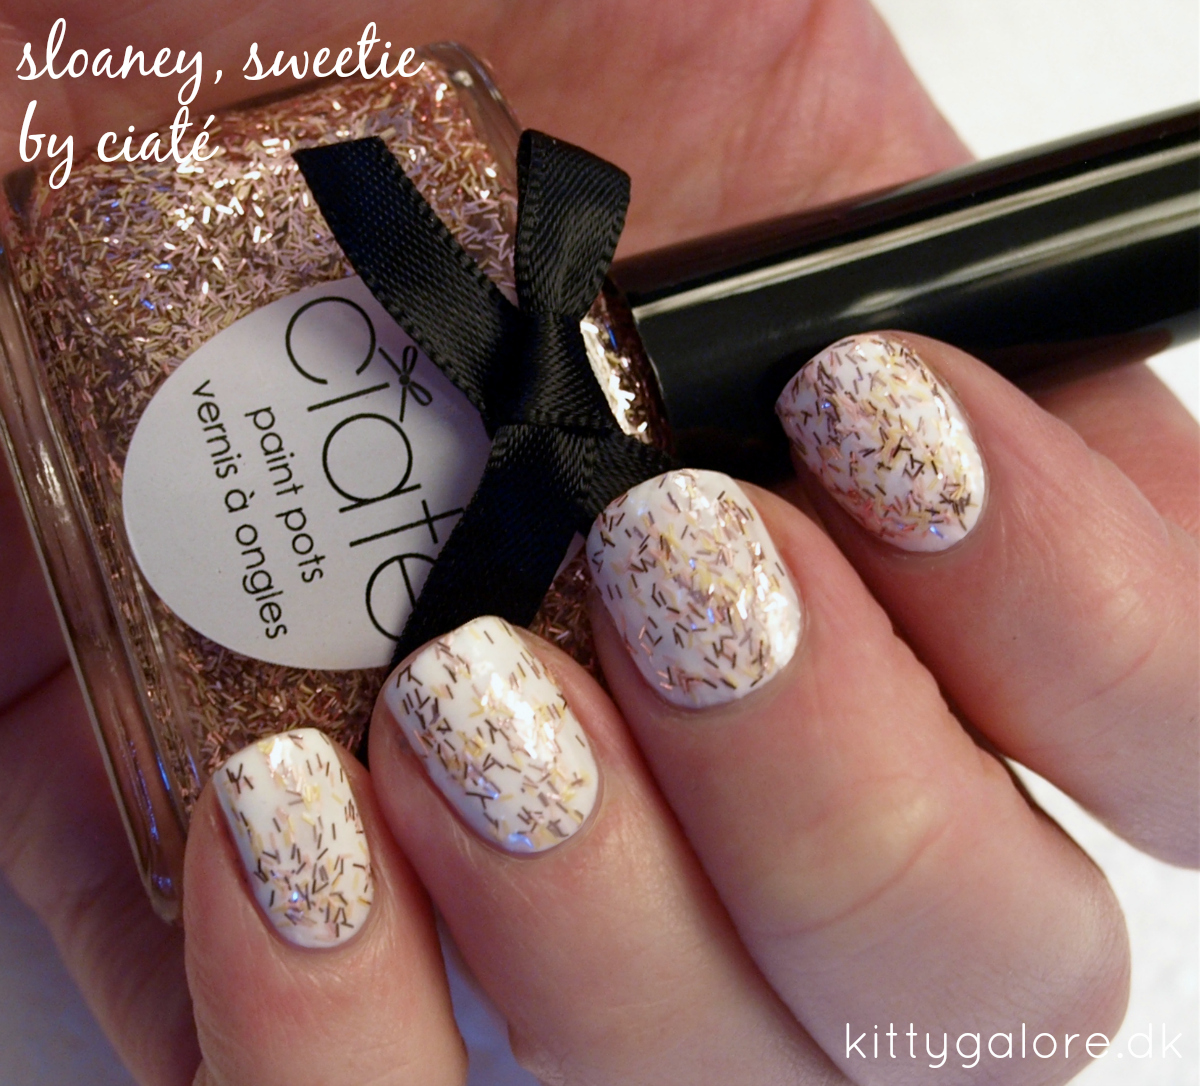 ciaté tweed sloaney-sweetie-1-coat-nail-polish-neglelak